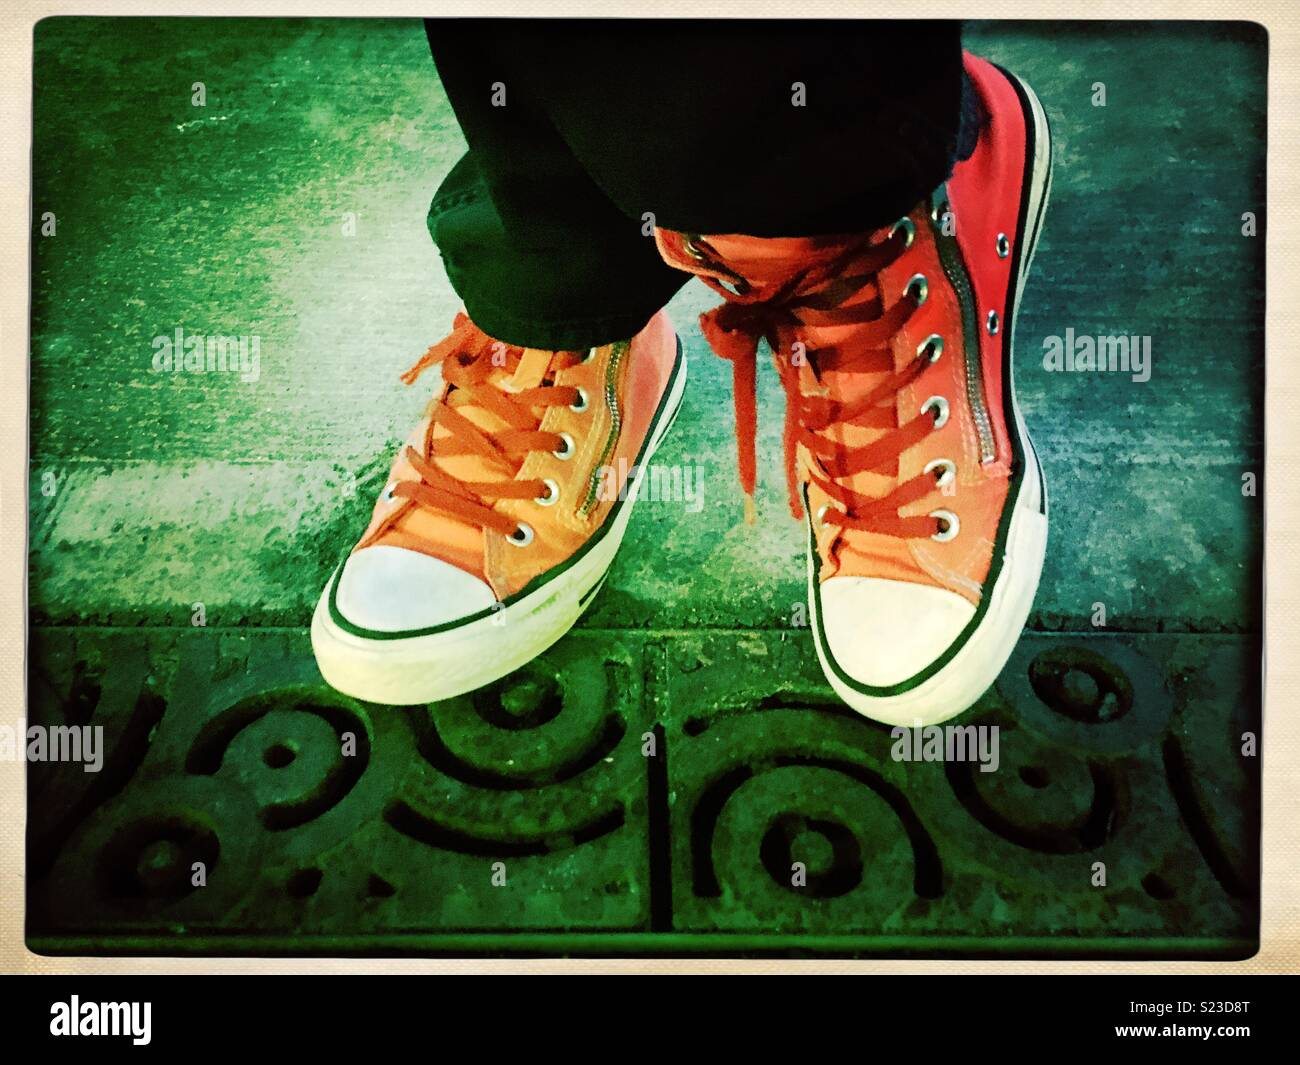 Dos grados línea Deshacer  Feet in orange Converse high tops on a ornate city grate Stock Photo - Alamy